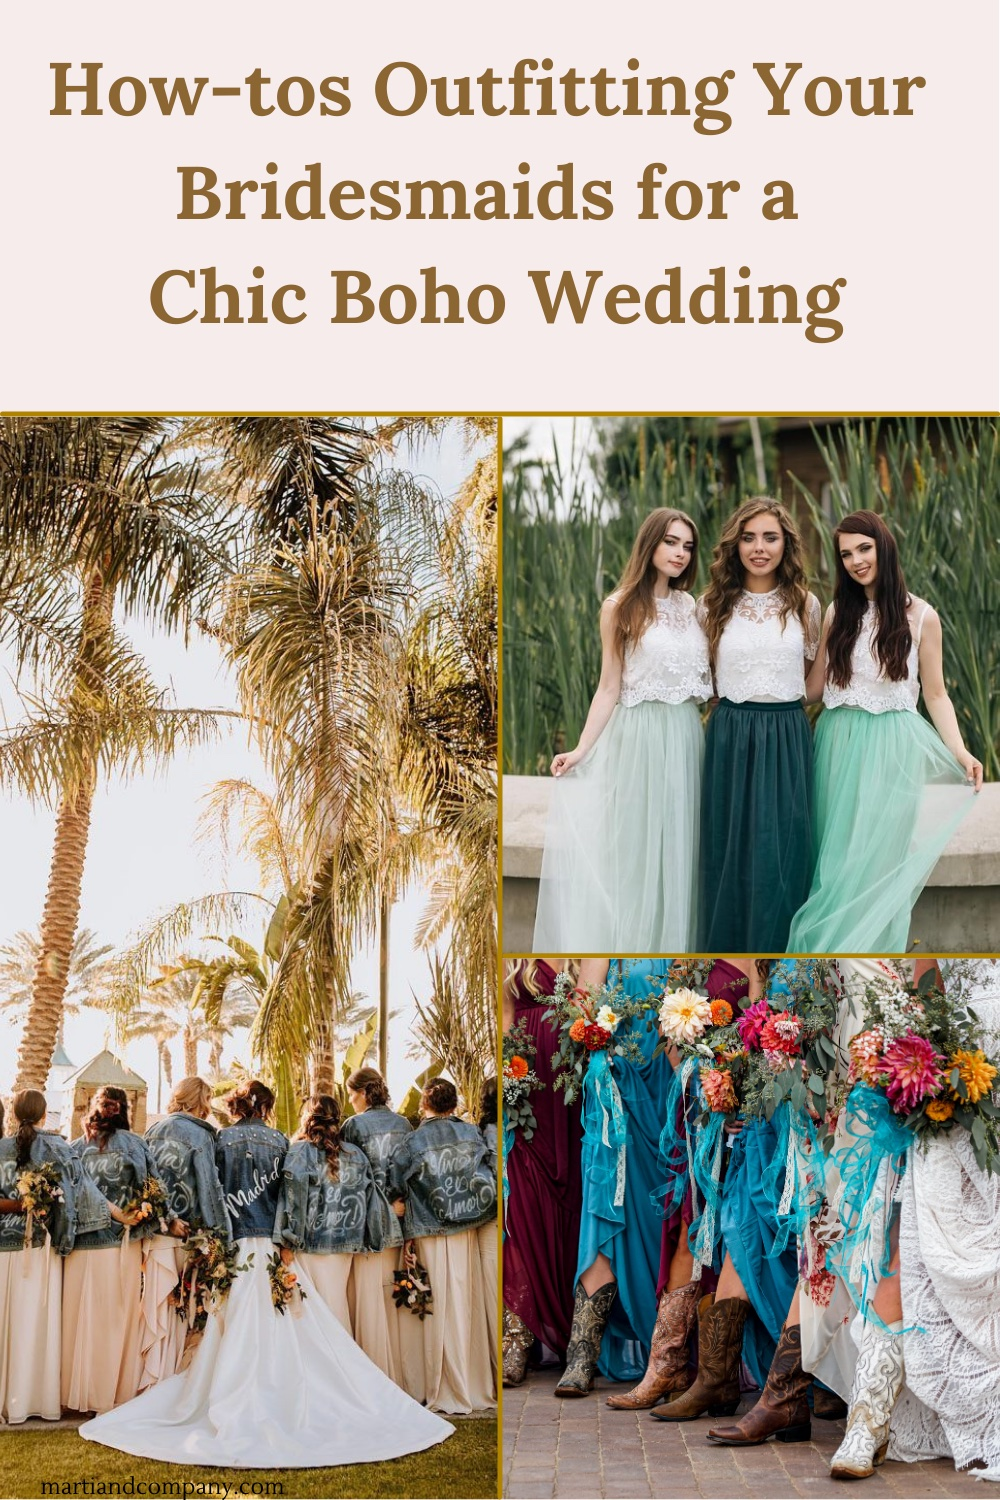 Pinterest graphic of boho bridesmaid outfits